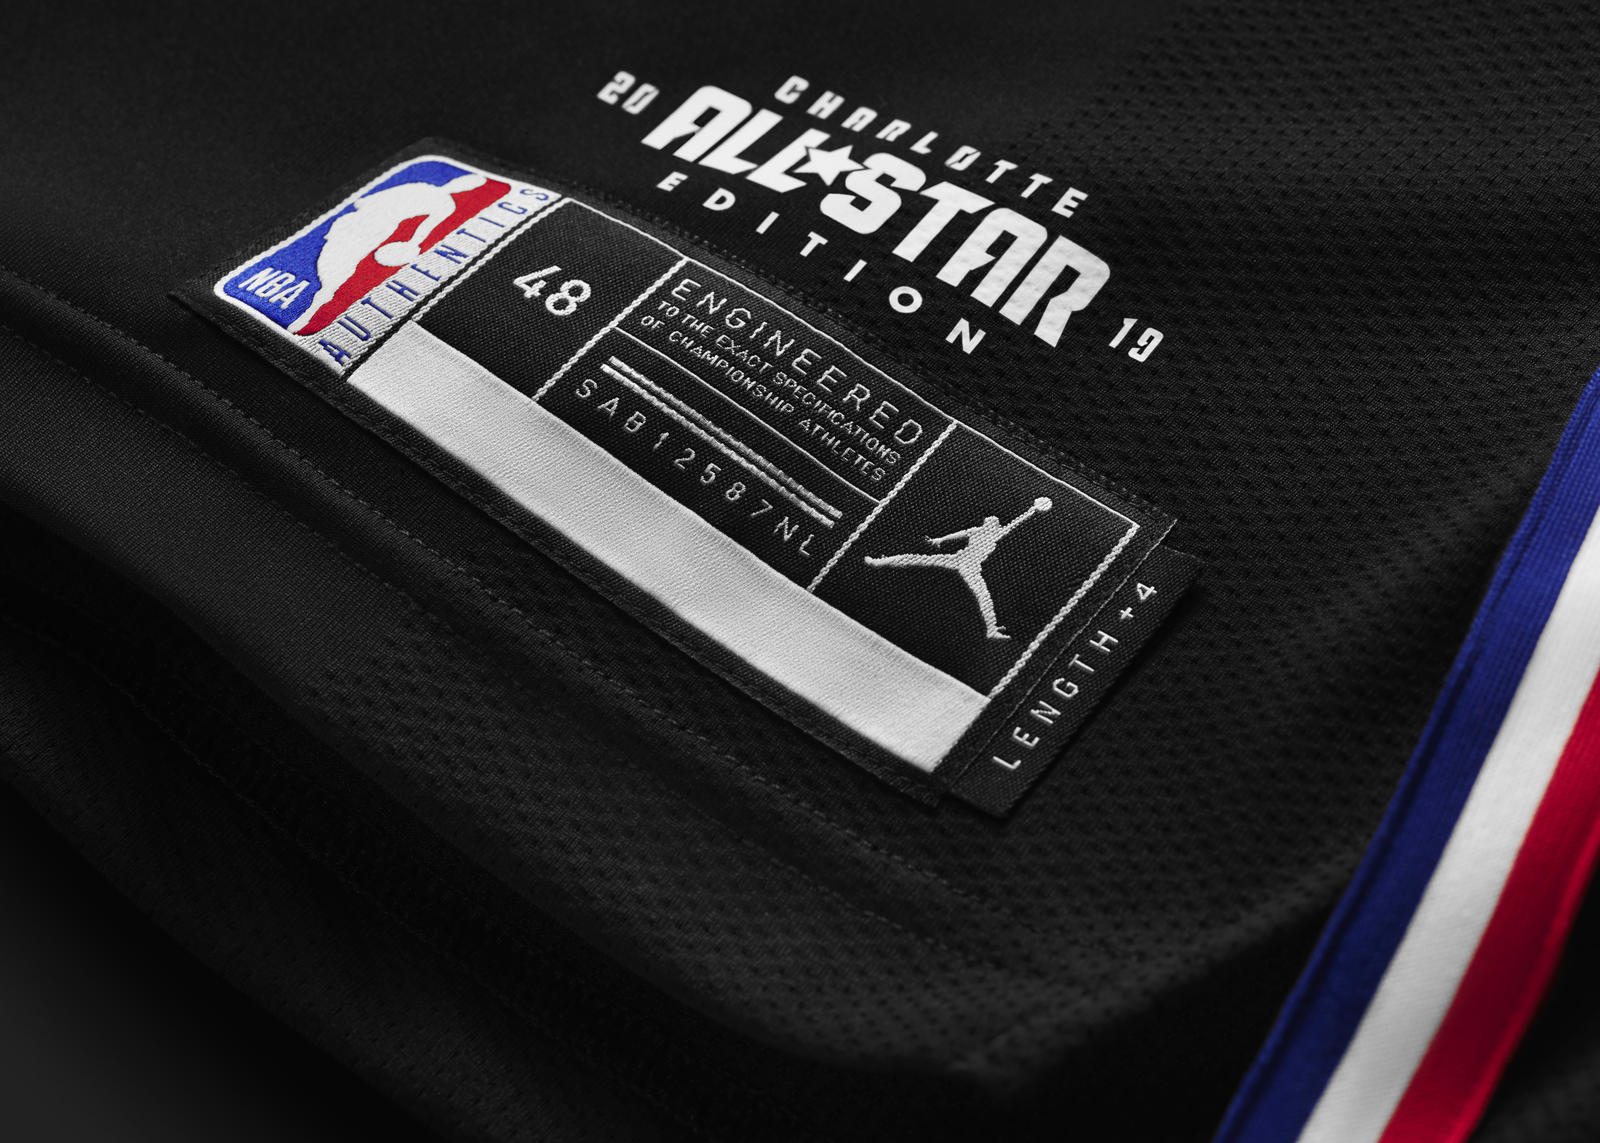 Jordan Brand dévoile les maillots du NBA All-Star Game 2019 ...